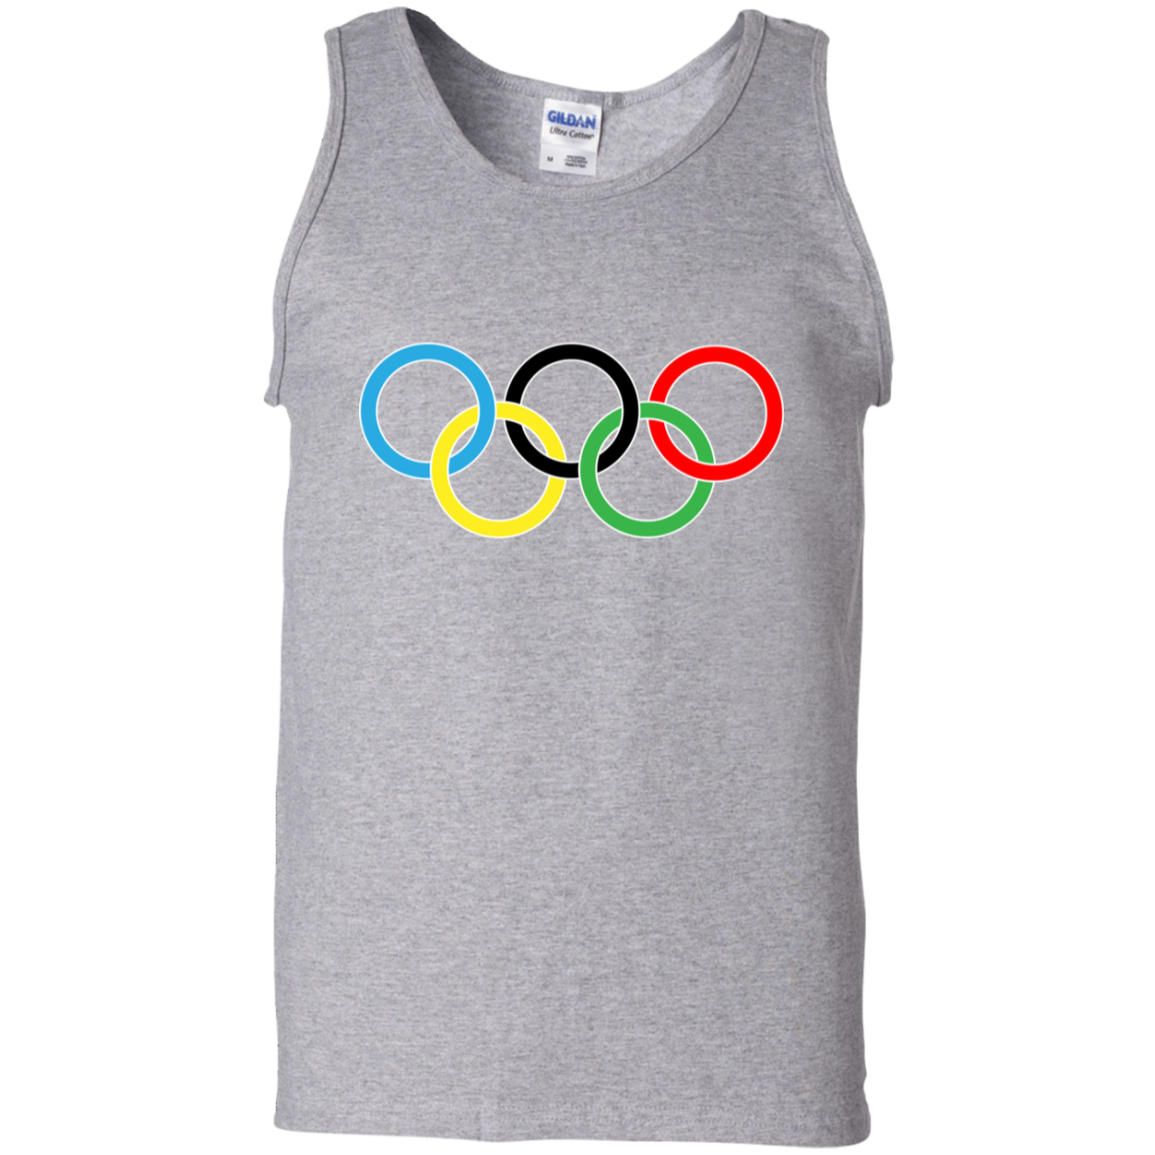 G220 Gildan 100% Cotton Tank Top / Olympics